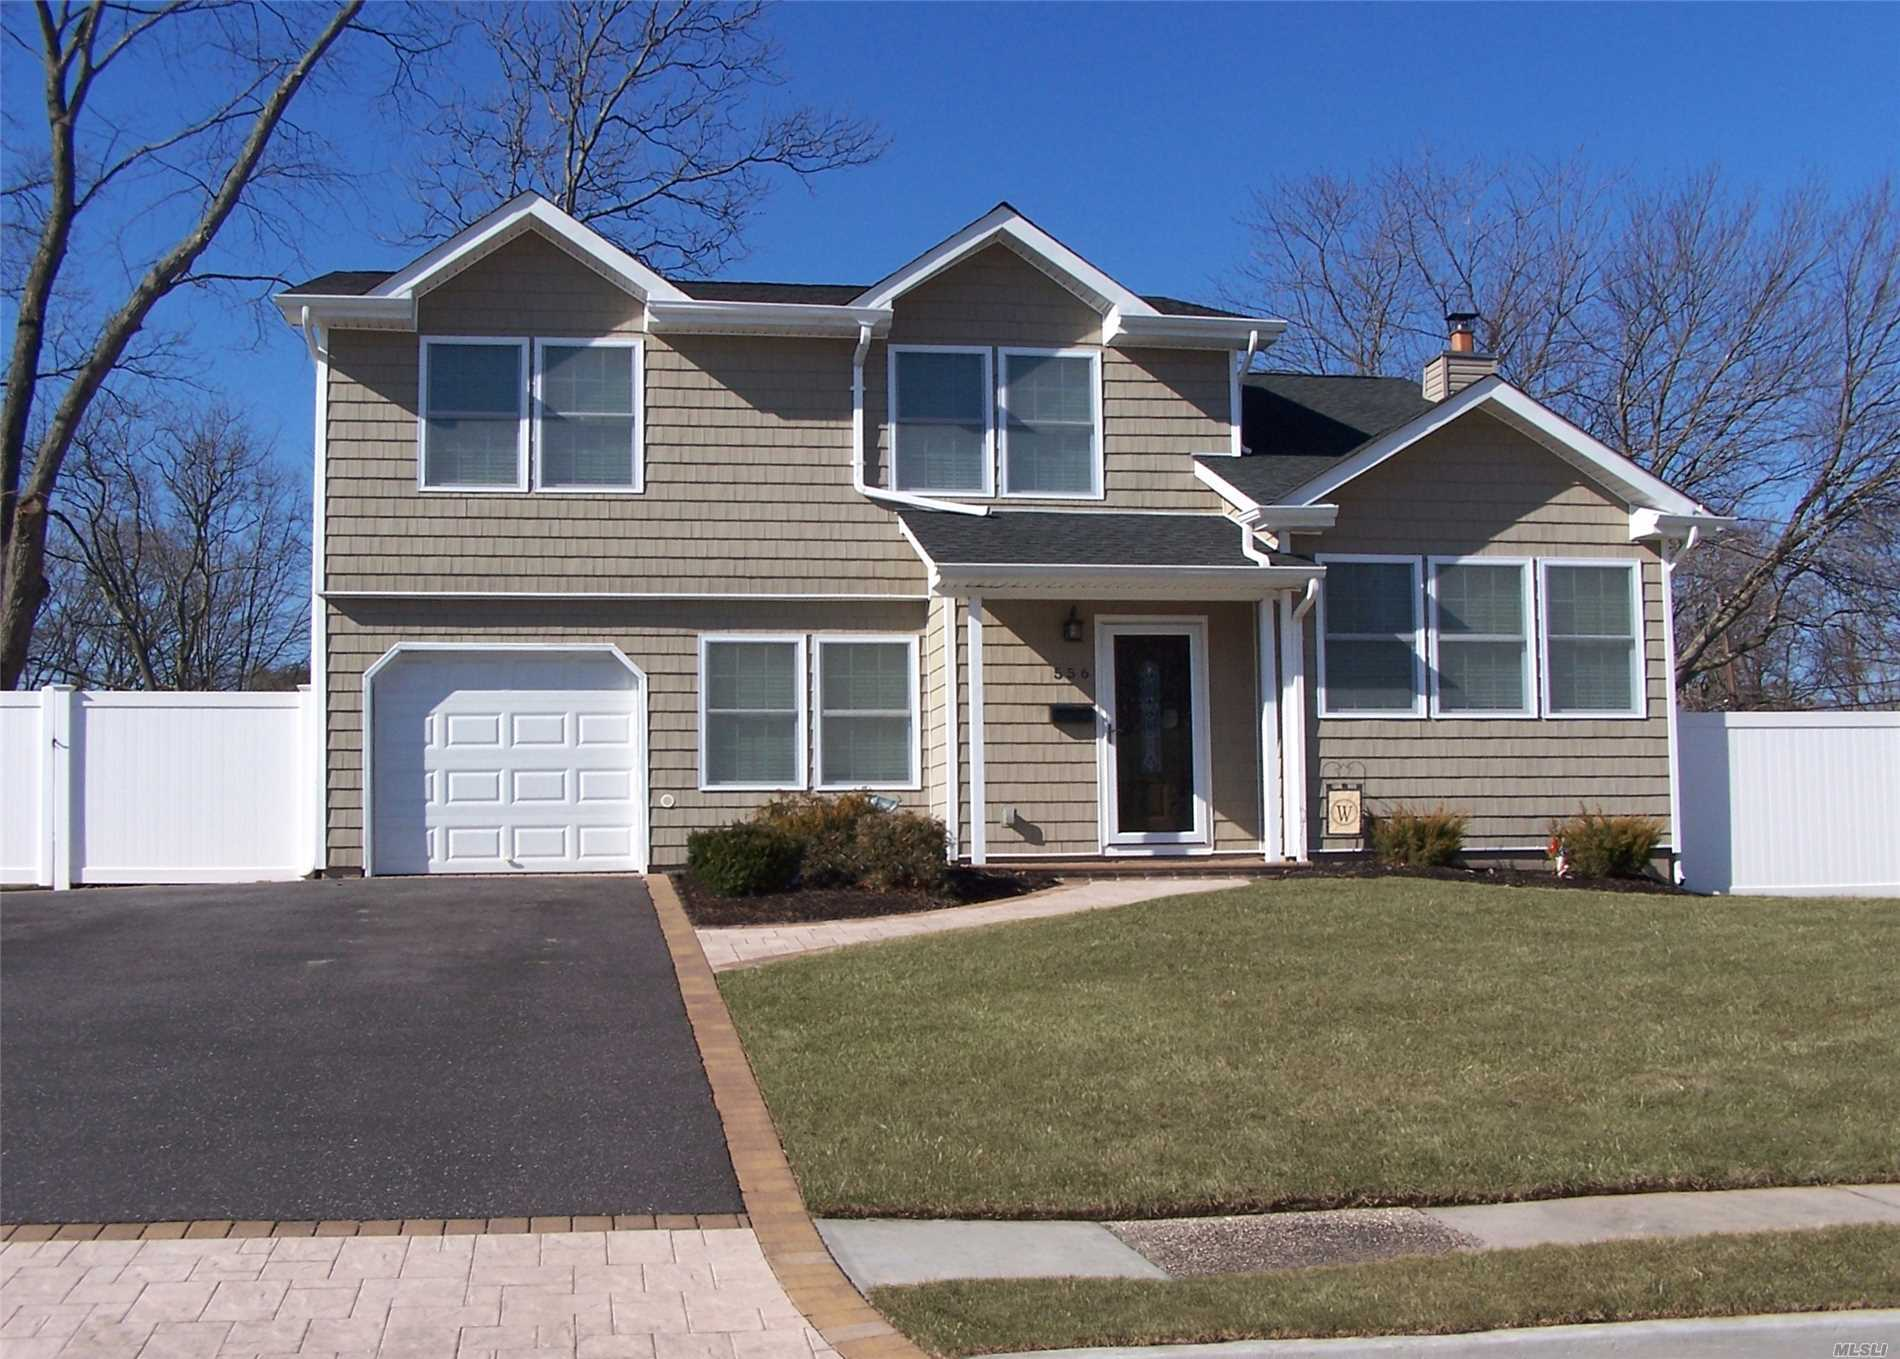 All Newly Renovated Magnificent  4 Bedroom 2.5 Bath, Colonial In Bayport/Blue Point School District , Features High Hats Throughout The Home, Formal Dining Room,  Eik With Granite Countertops, And Cherry Cabinets,  And Ss Appliances, Living Rm, Den,  Master Bedroom Suite W/Walk In Closet, Central Air, New Roof, Siding & Windows.